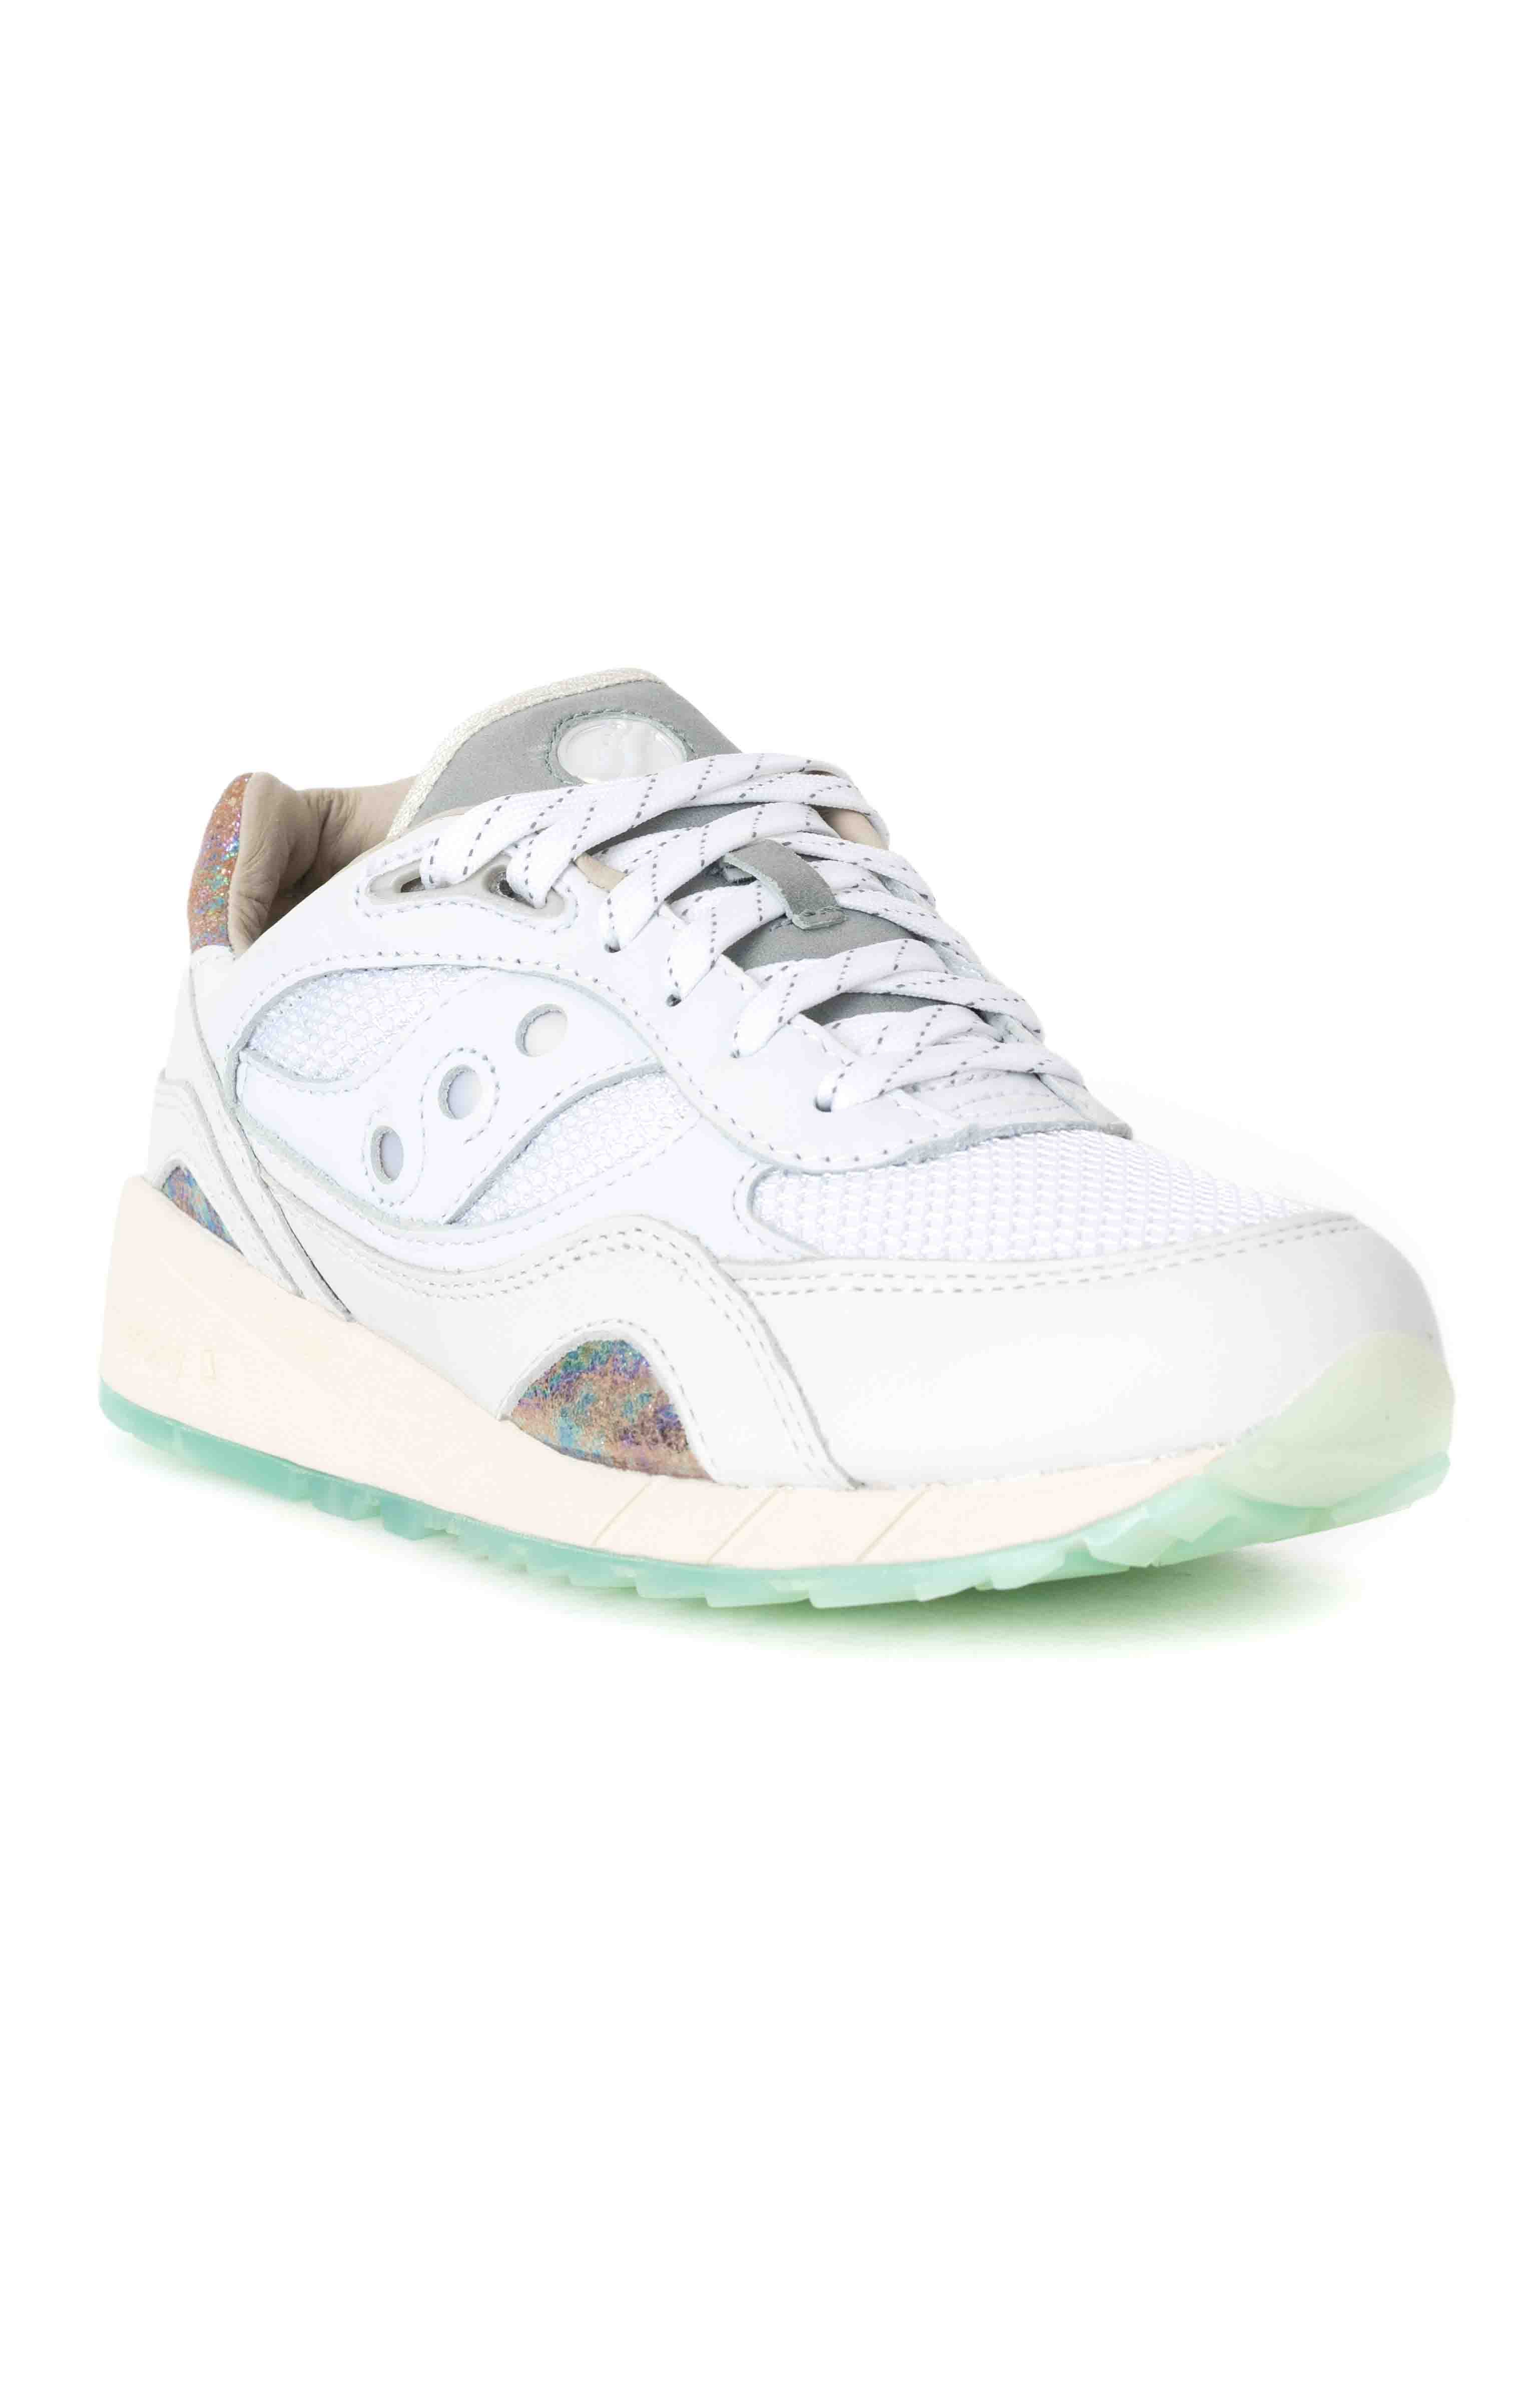 (S70594-1) Shadow 6000 Shoes - Pearl 3